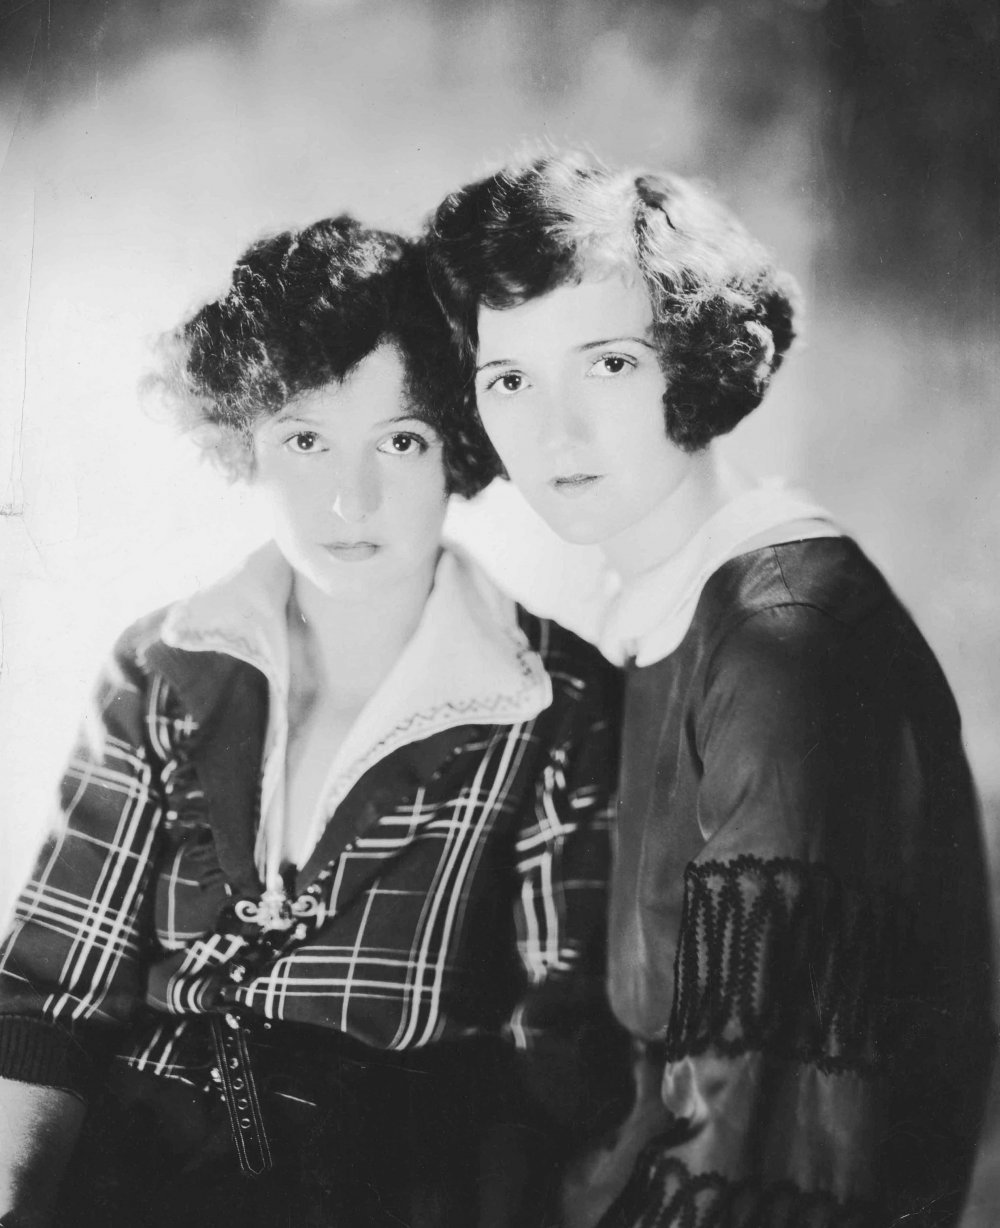 Norma Talmadge and Constance Talmadge, American-born film actress and producer; film actress. Photographed by James Abbe.